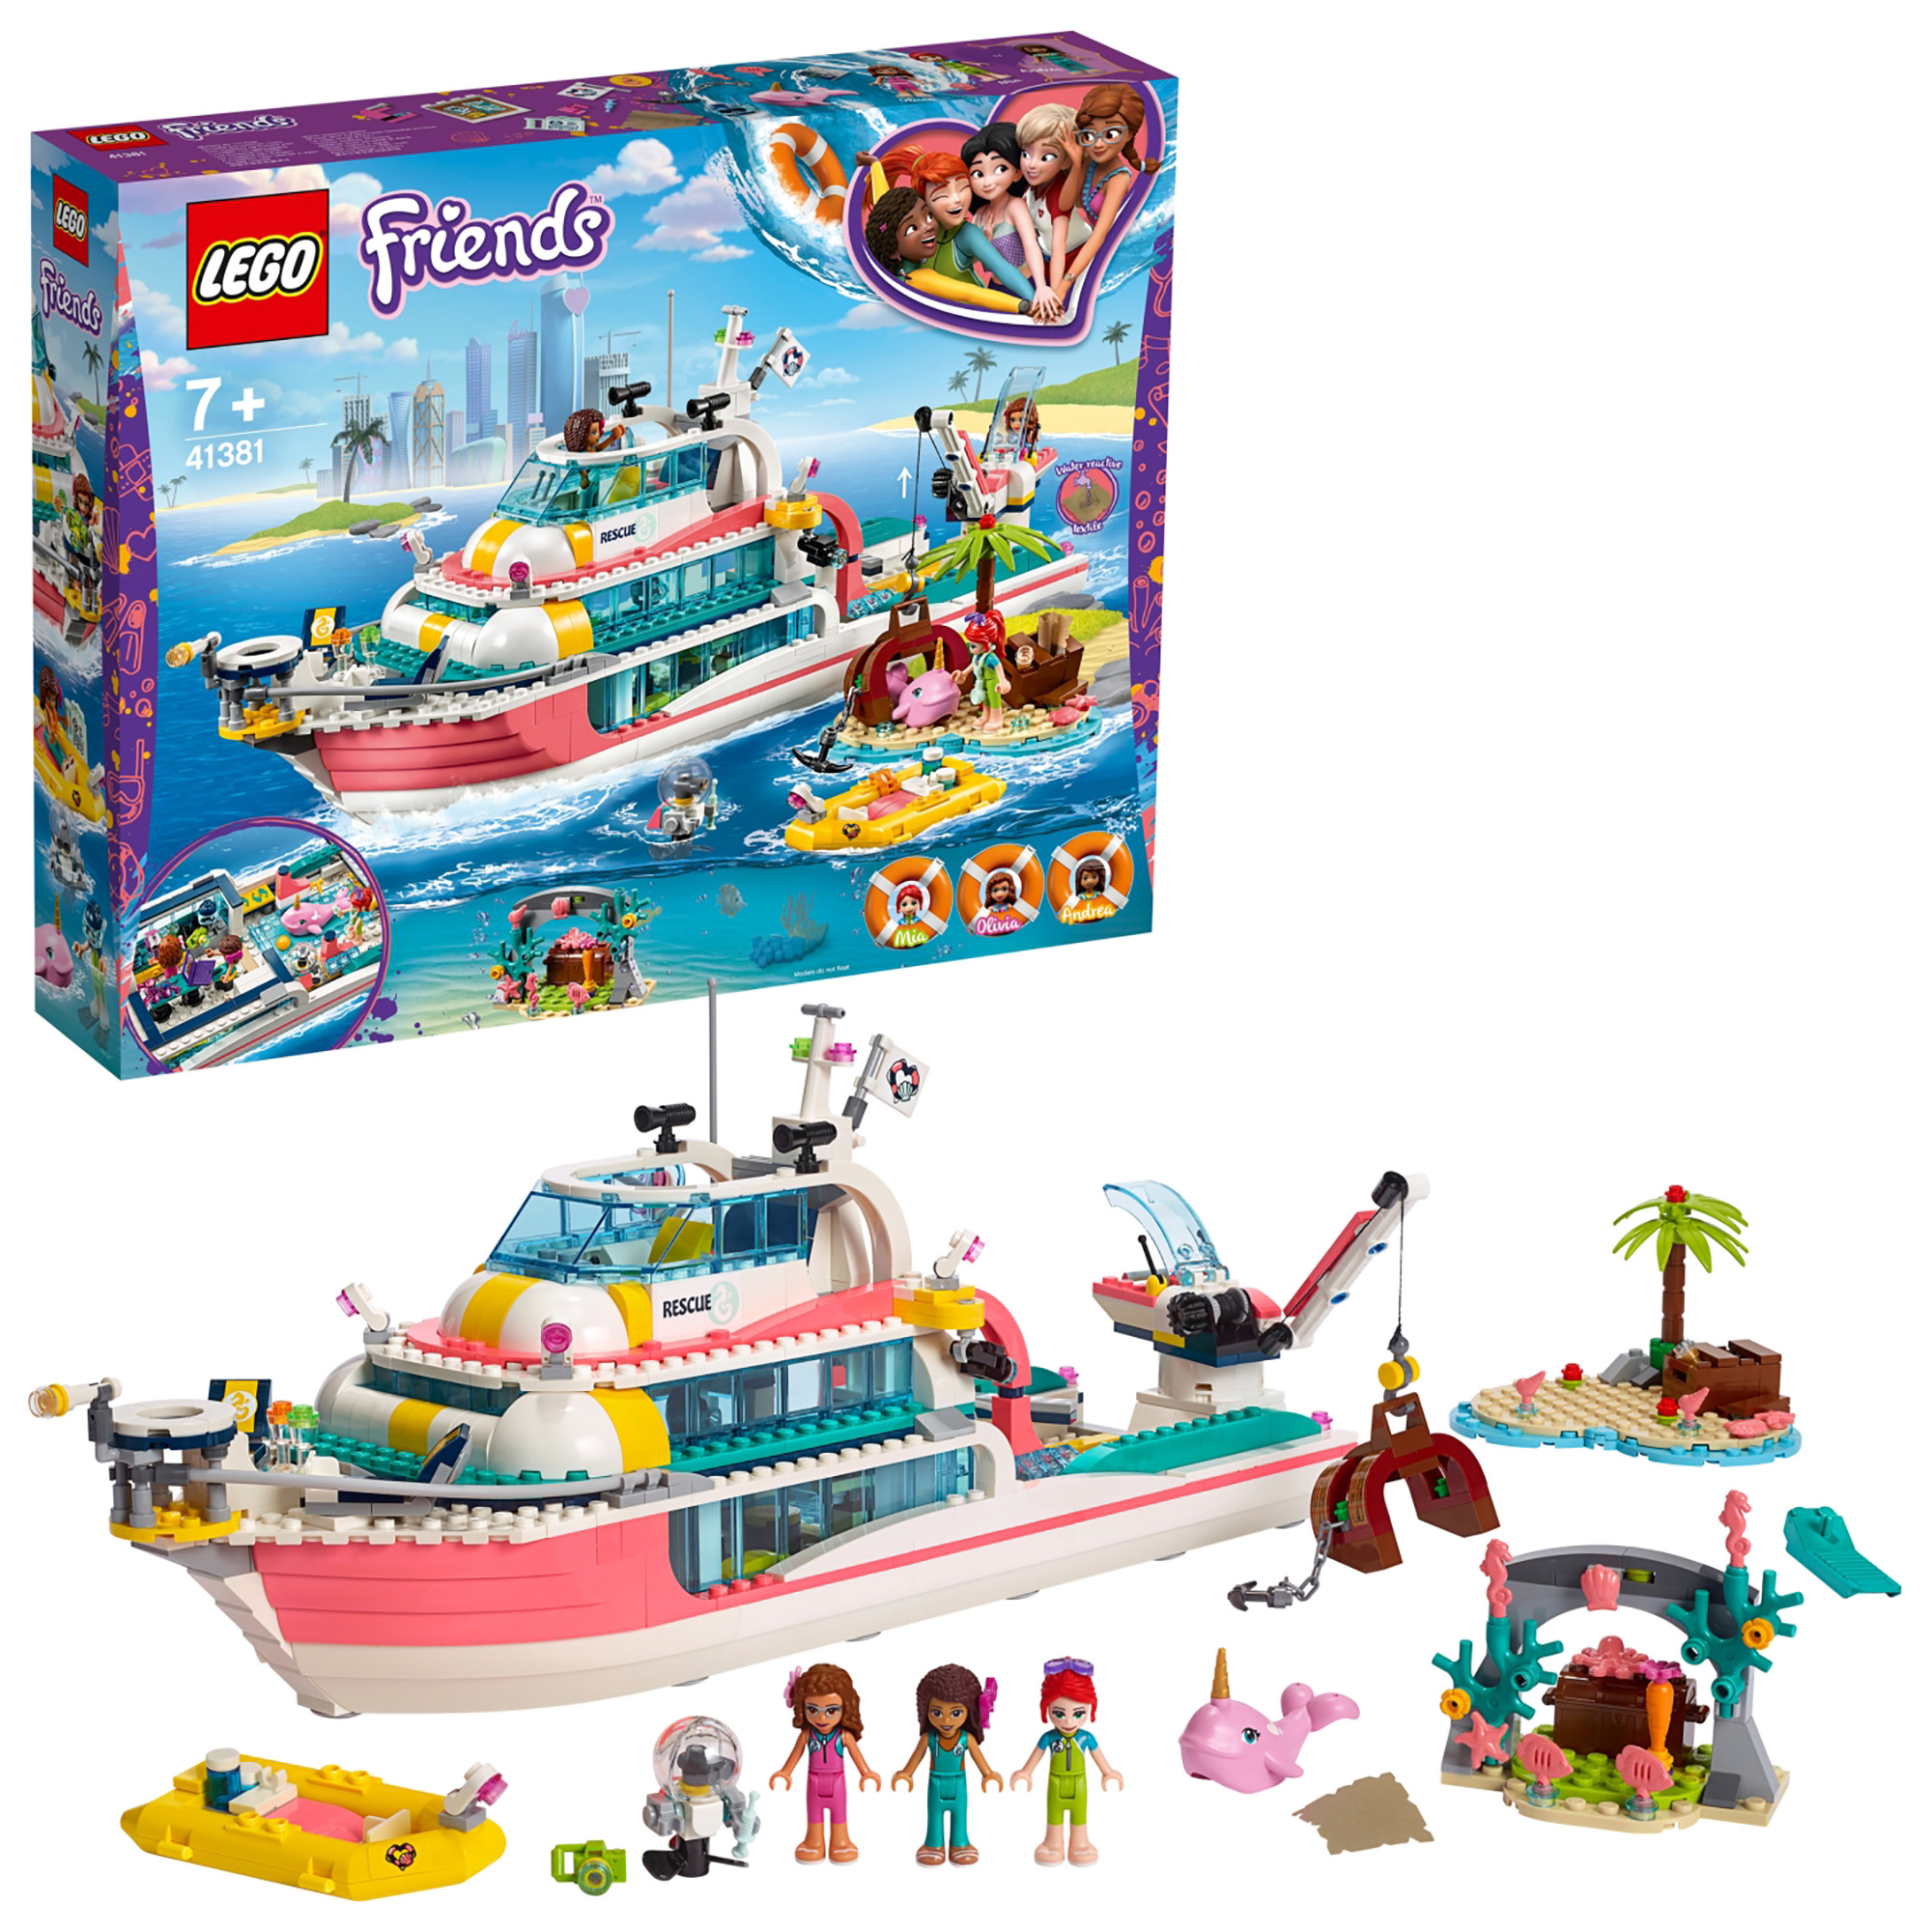 LEGO Friends Rescue Mission Boat